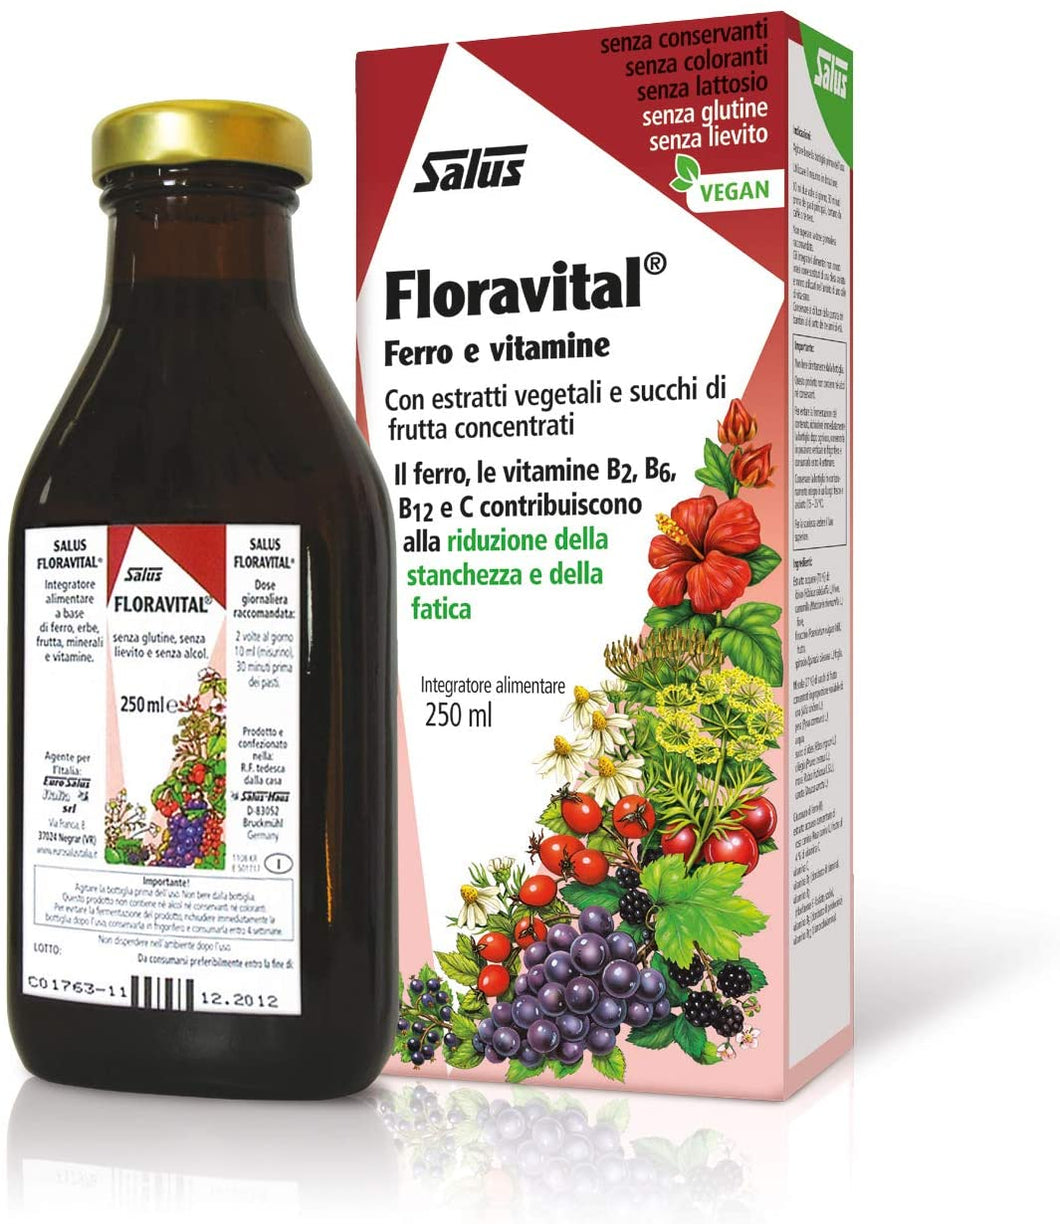 Floravital Liquid Iron and Vitamins 250mls